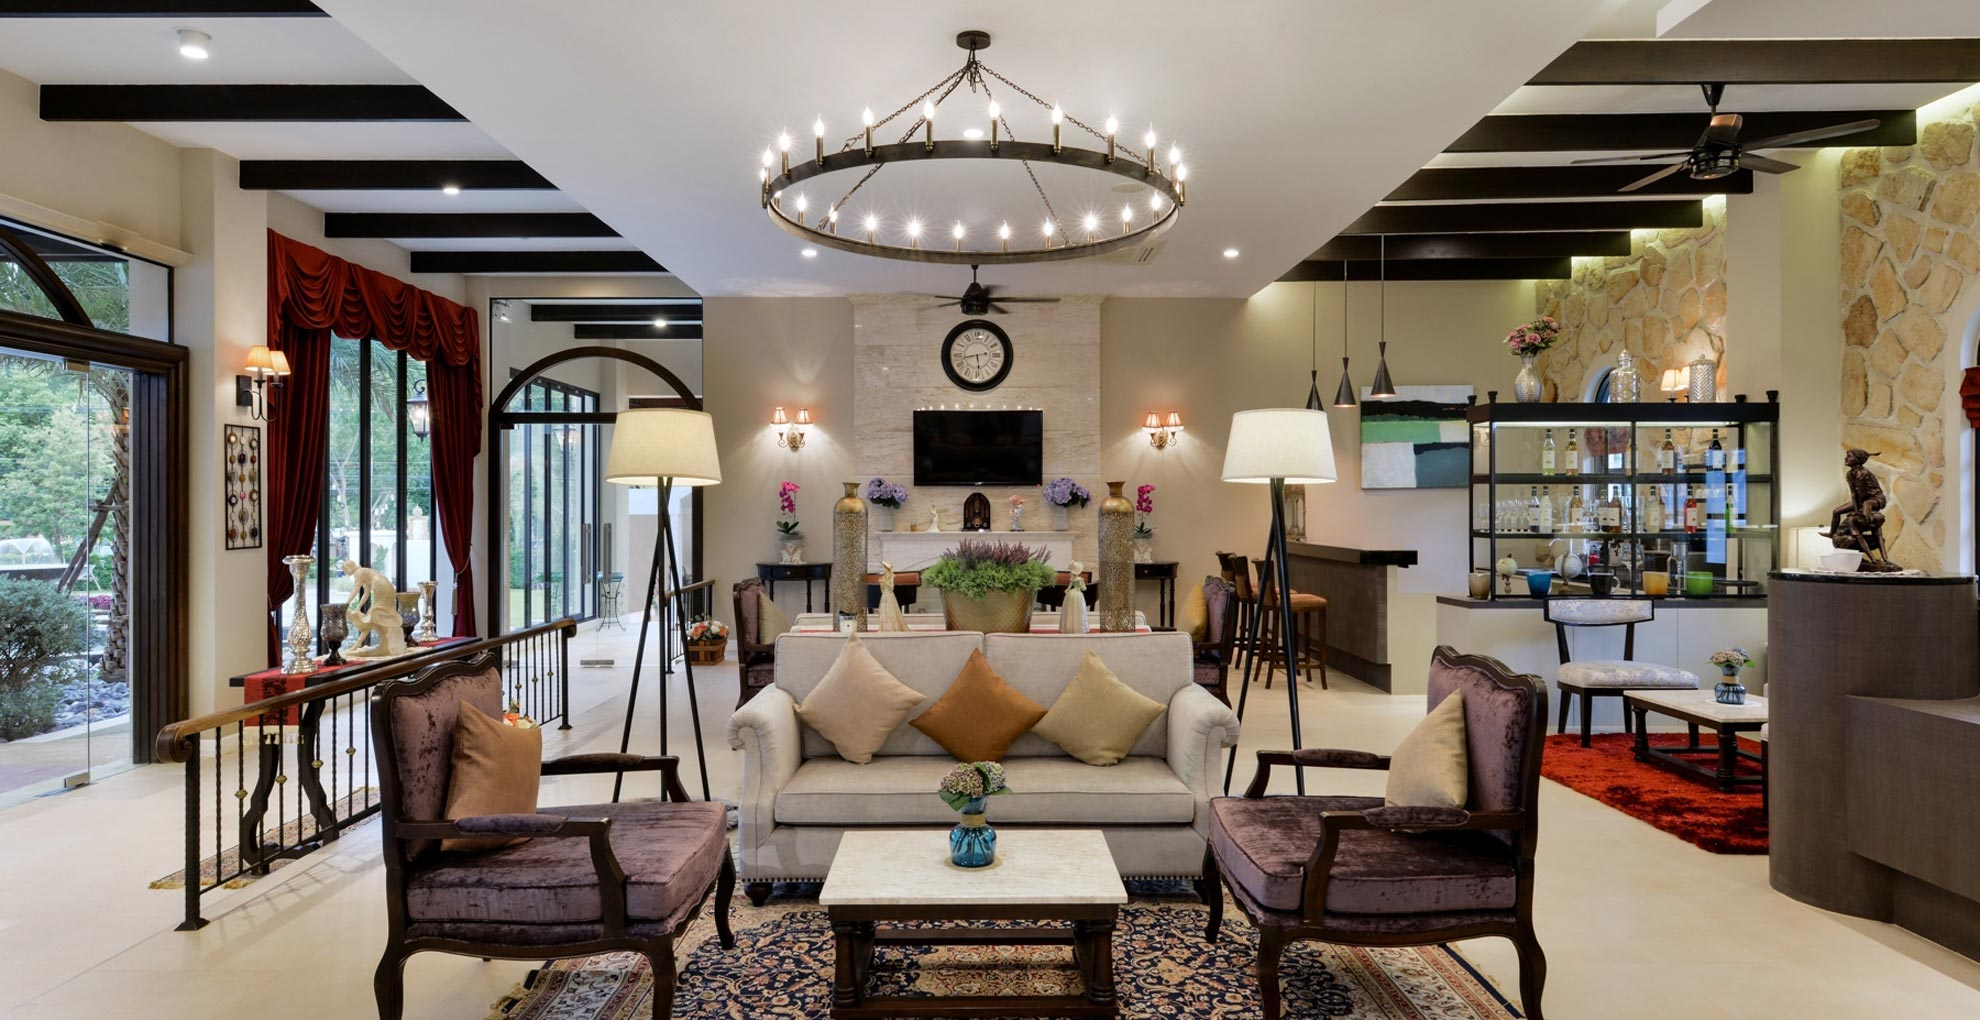 Le Monte Hotel Khao Yai | Best Hotels in Asia | MUSE Hotel Awards